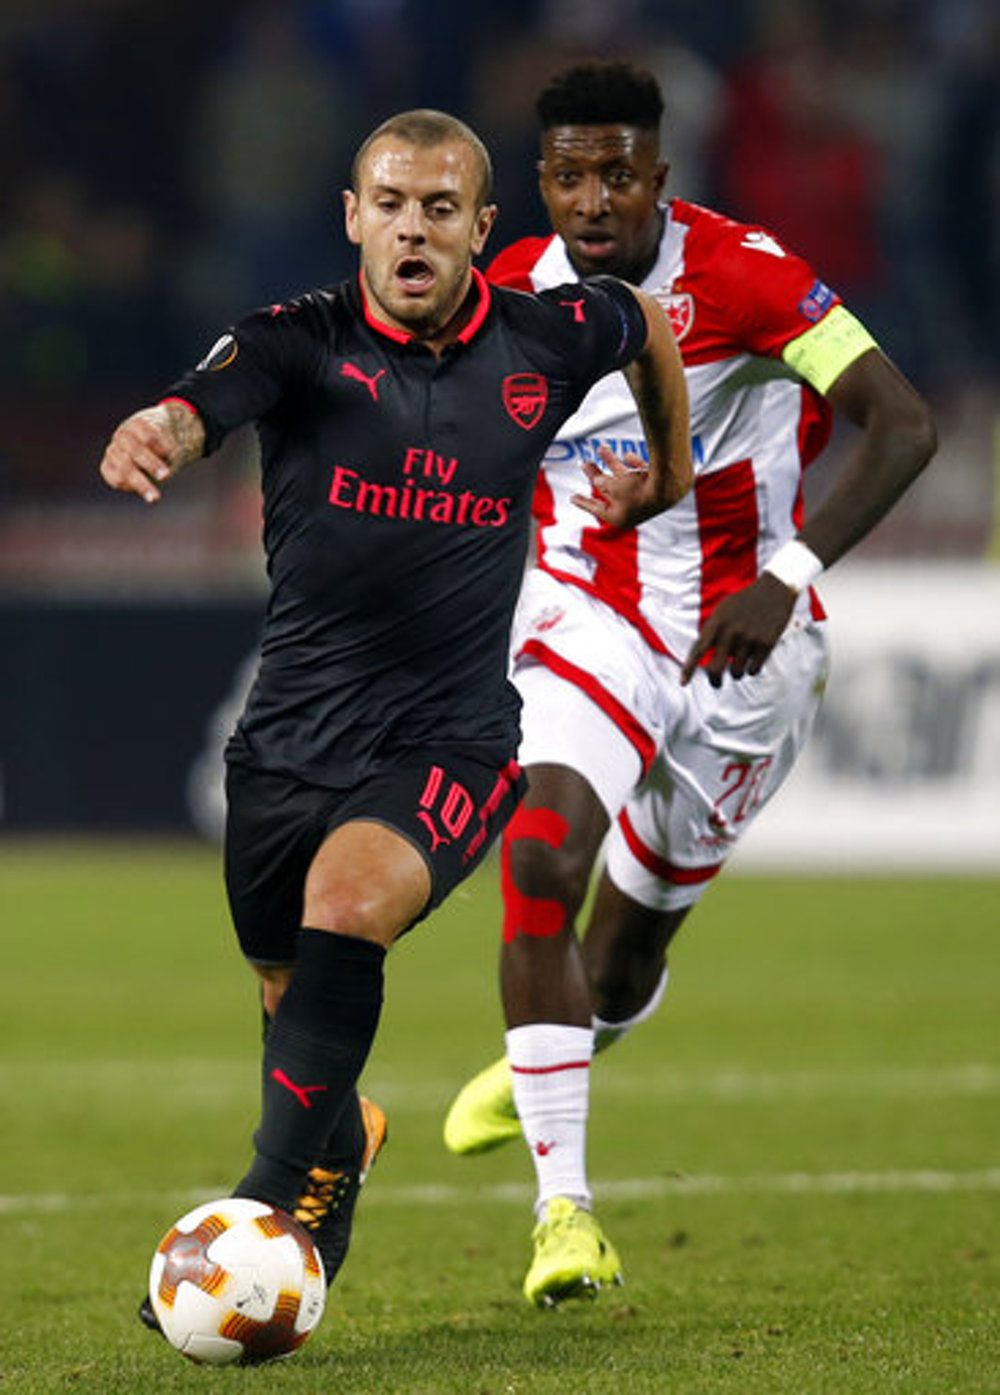 Arsenal's Jack Wilshere, front, challenges for the ball with Red Star's Mitchell Donald during the Europa League group H soccer match between Red Star and Arsenal on the stadium Rajko Mitic in Belgrade, Serbia, Thursday, Oct. 19, 2017. (Darko Vojinovic/AP)